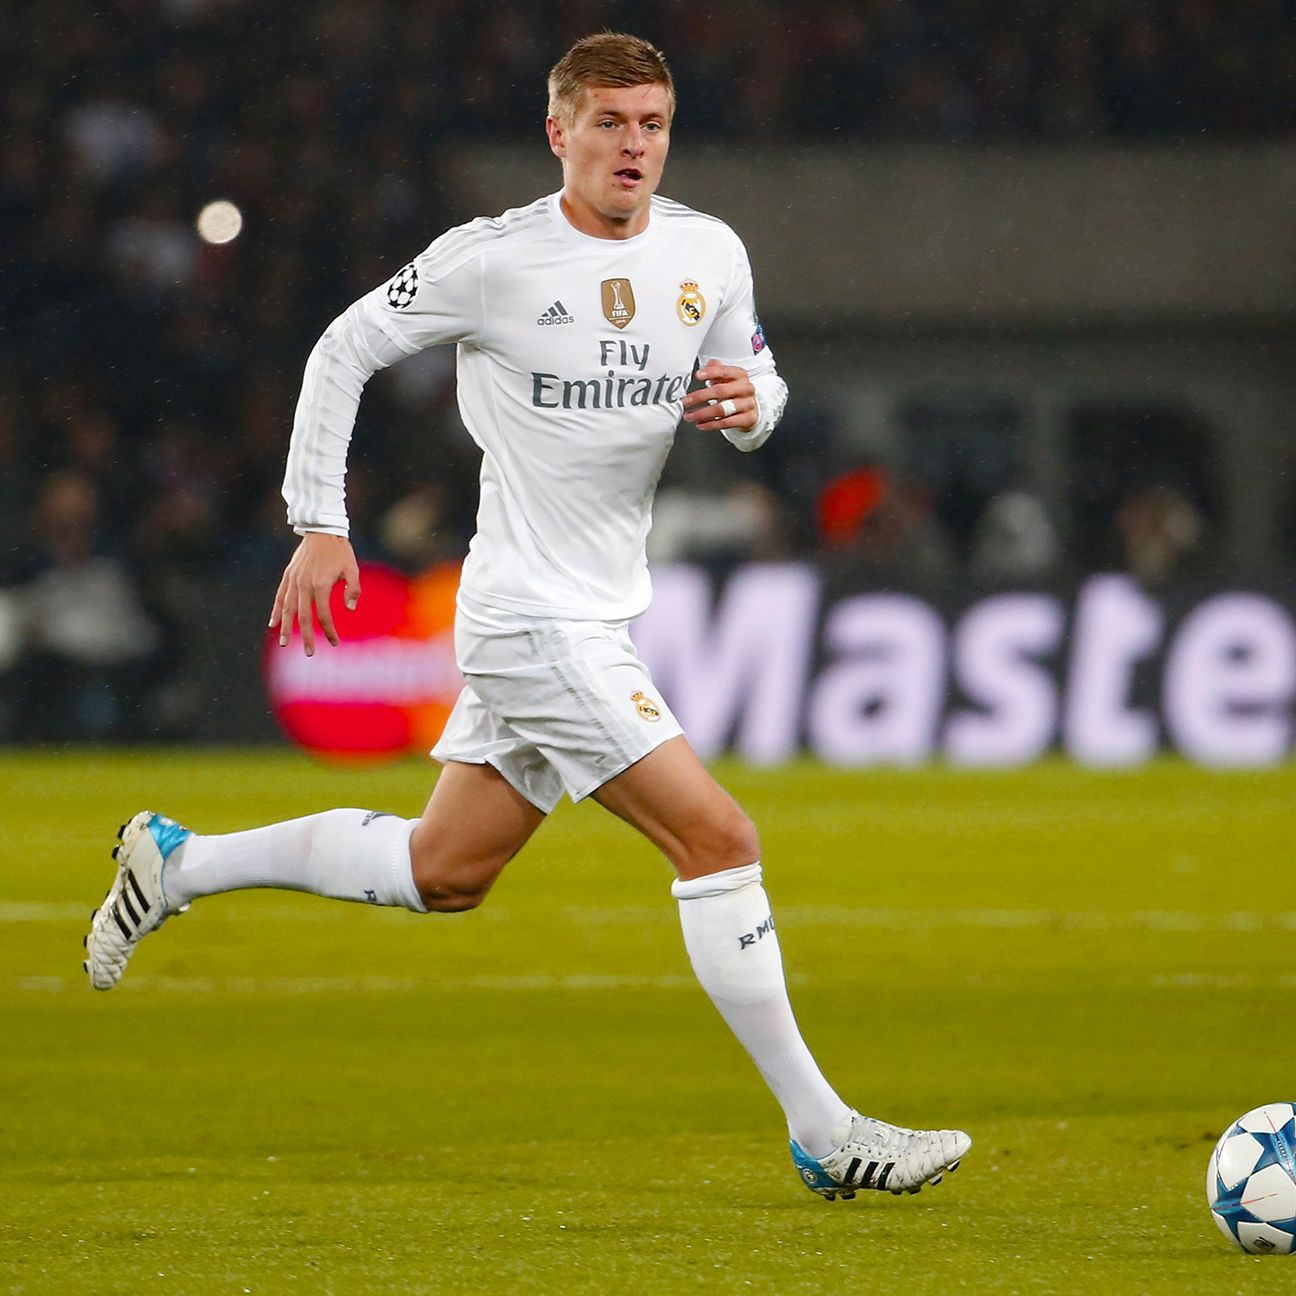 Toni Kroos' control of the midfield allowed Real to dictate the tempo against the French hosts.